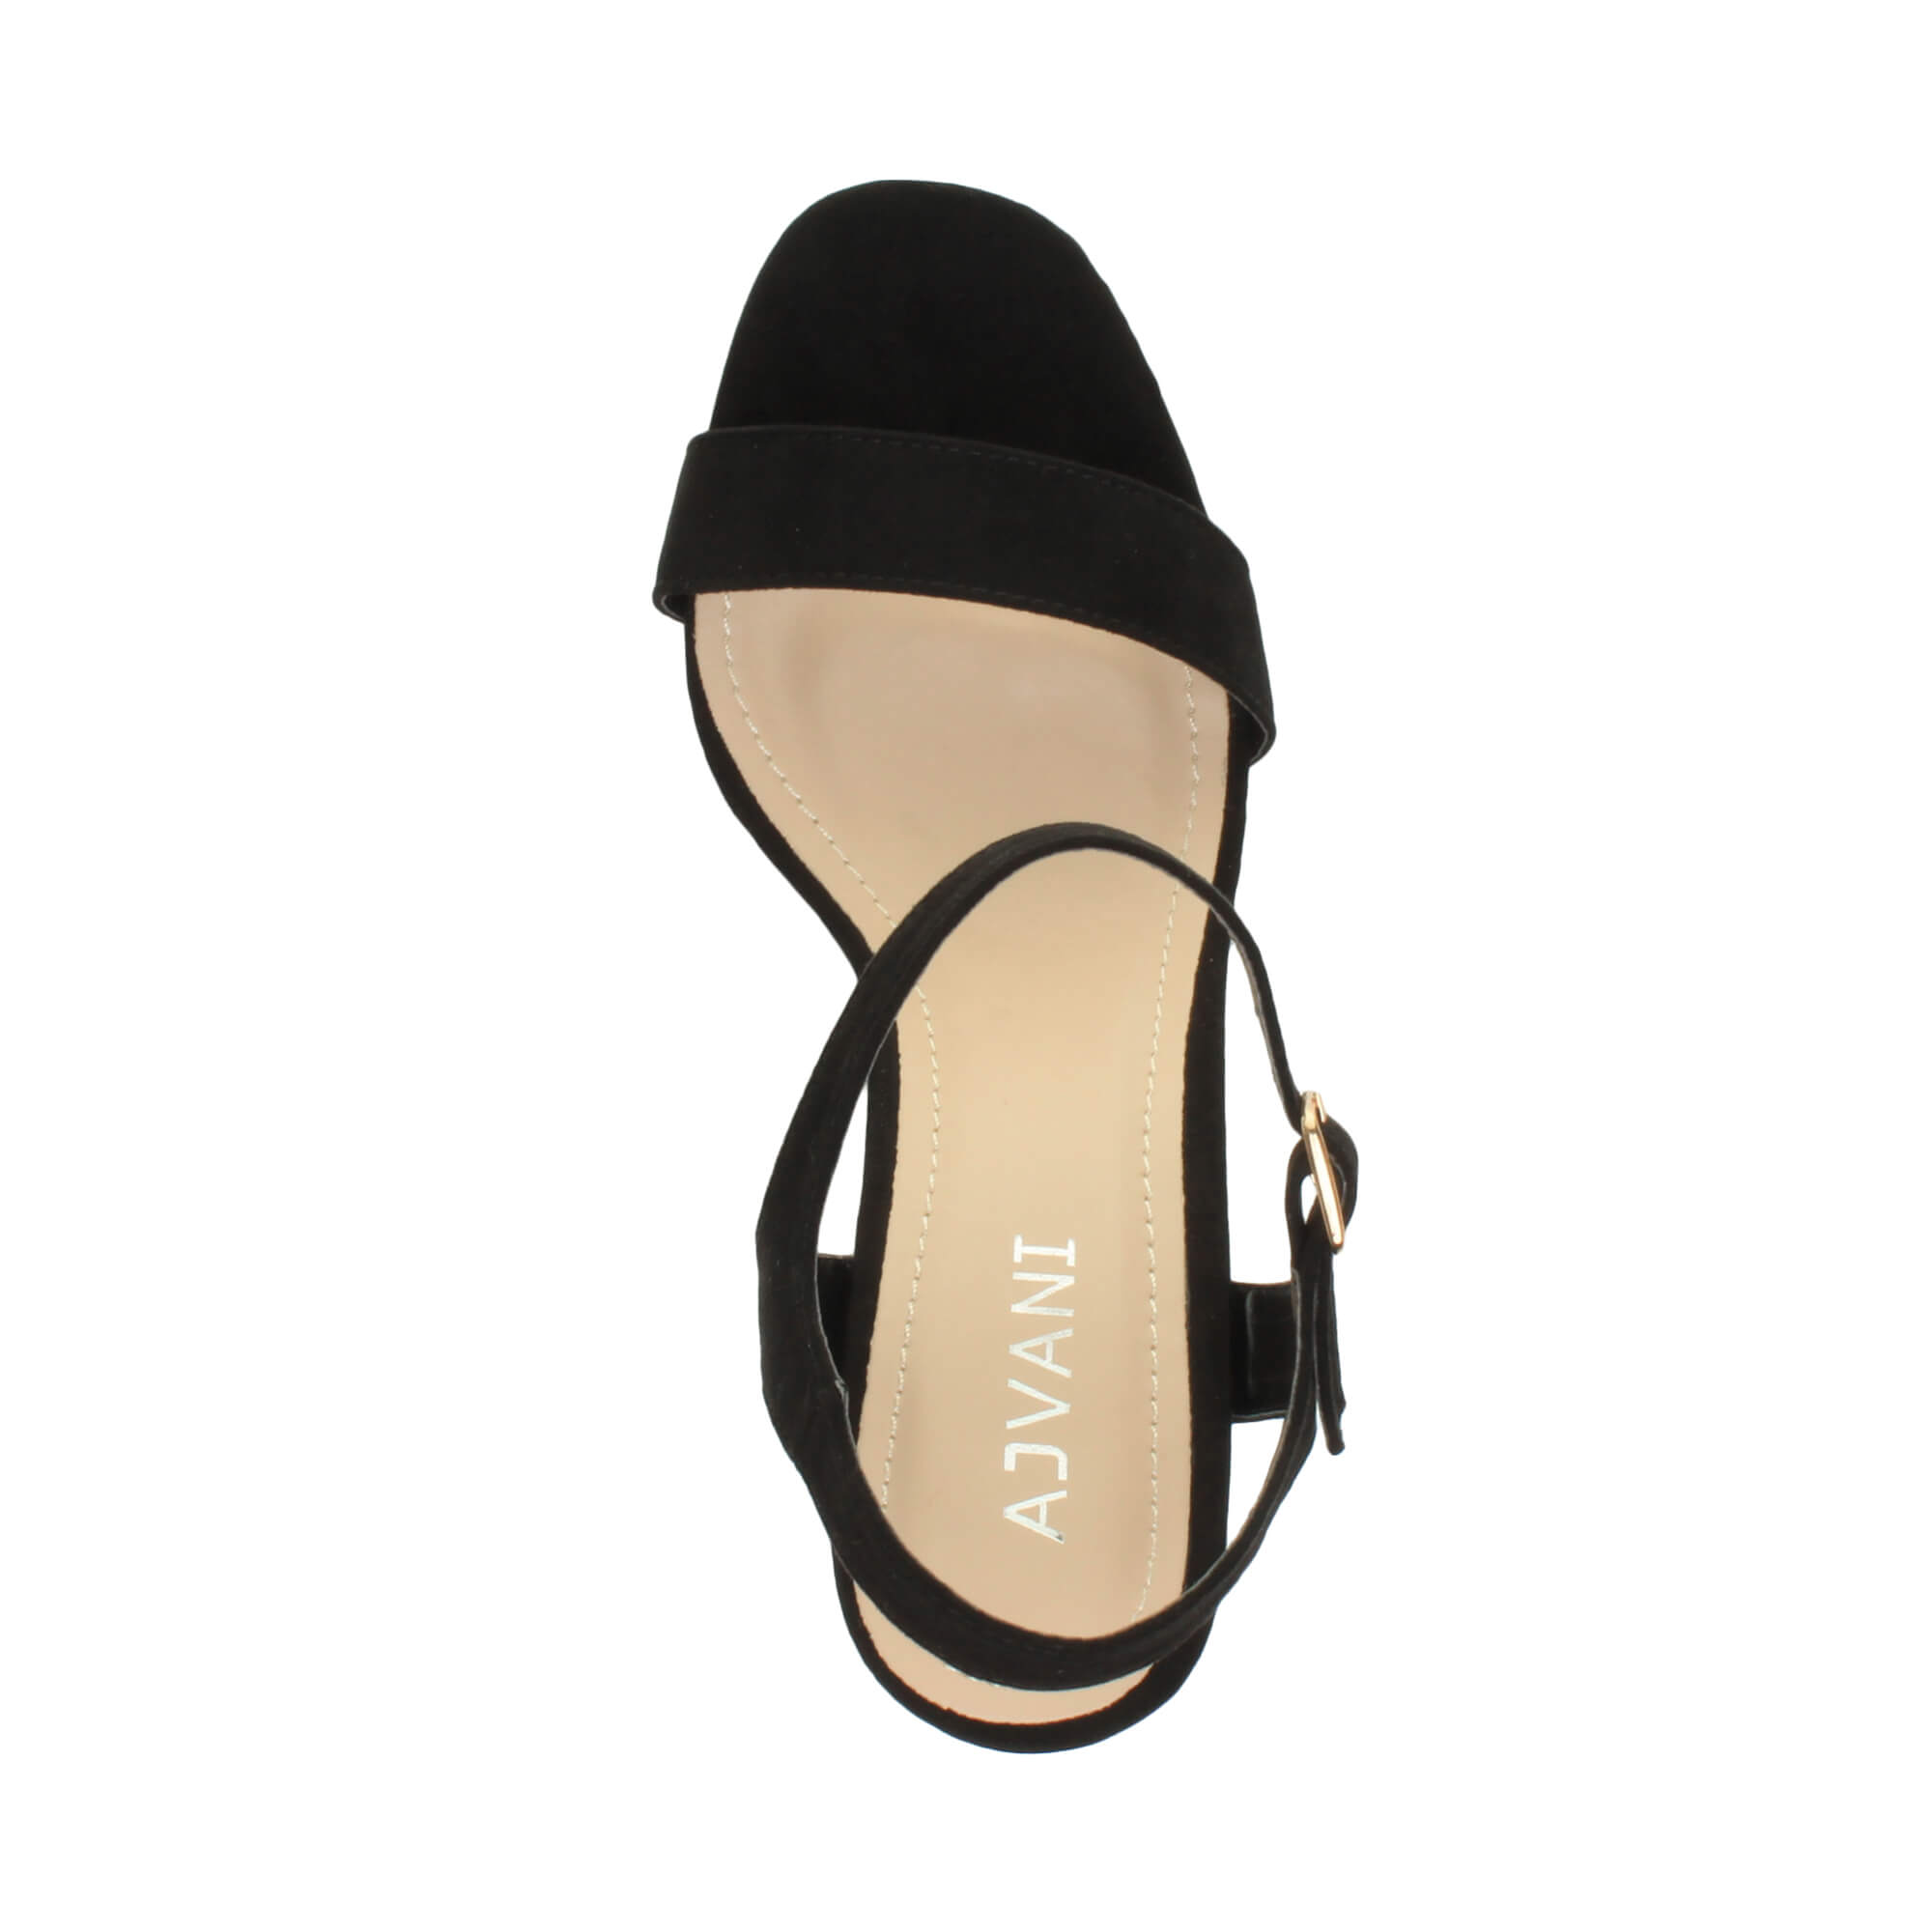 WOMENS-LADIES-HIGH-HEEL-BUCKLE-STRAPPY-BASIC-BARELY-THERE-SANDALS-SHOES-SIZE thumbnail 14